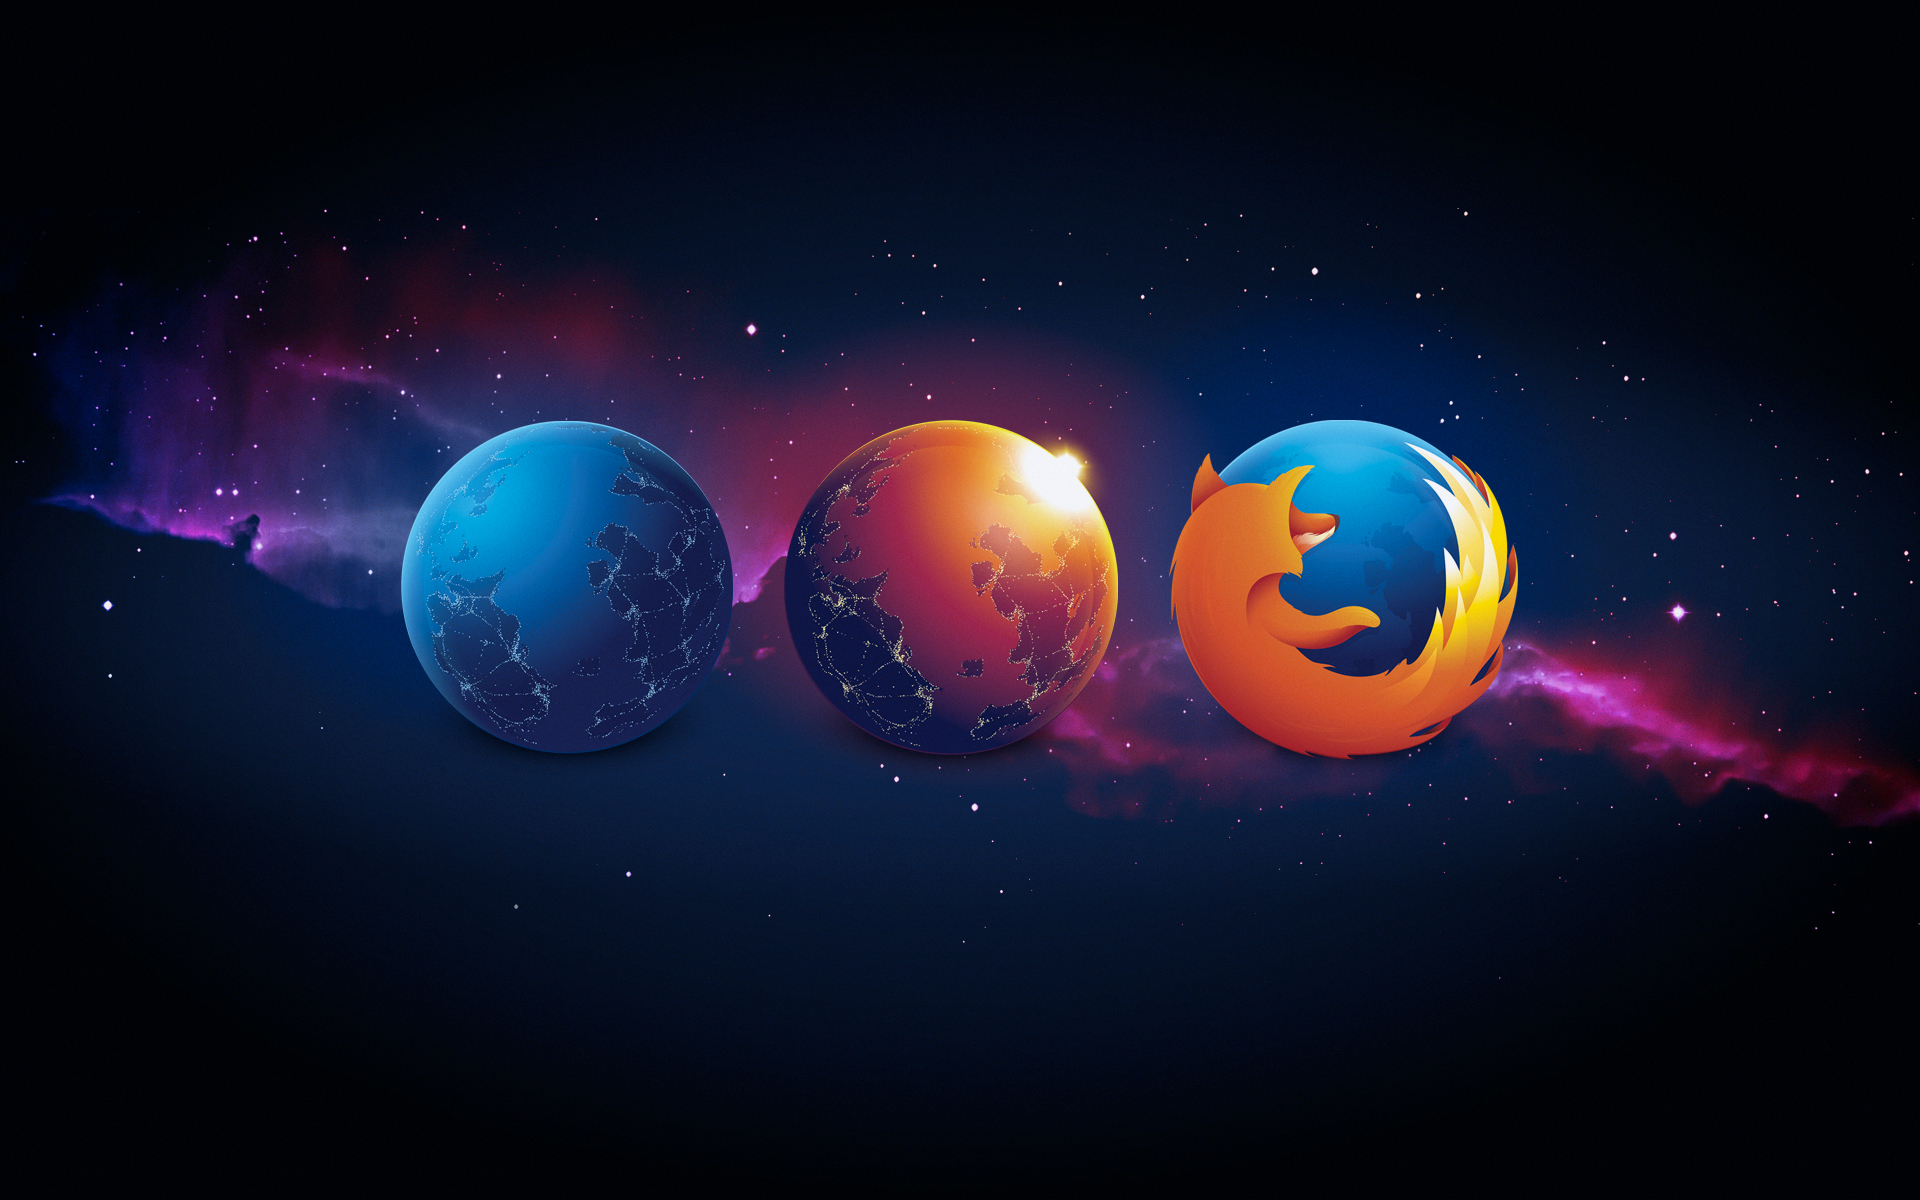 Nightly / Aurora / Firefox wallpaper